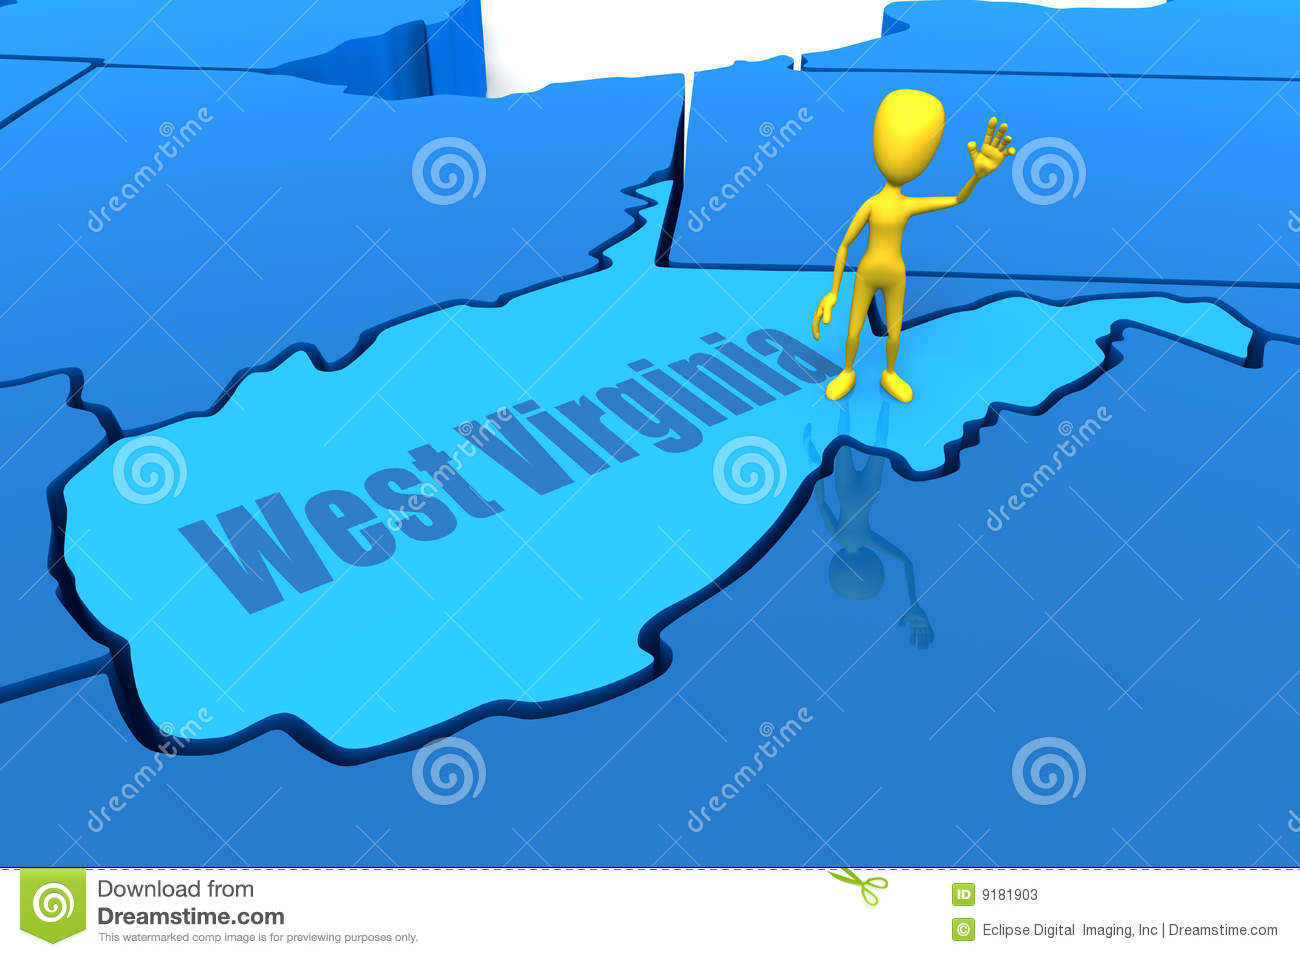 West Virginia State Outline With Yellow Stick Figu Stock